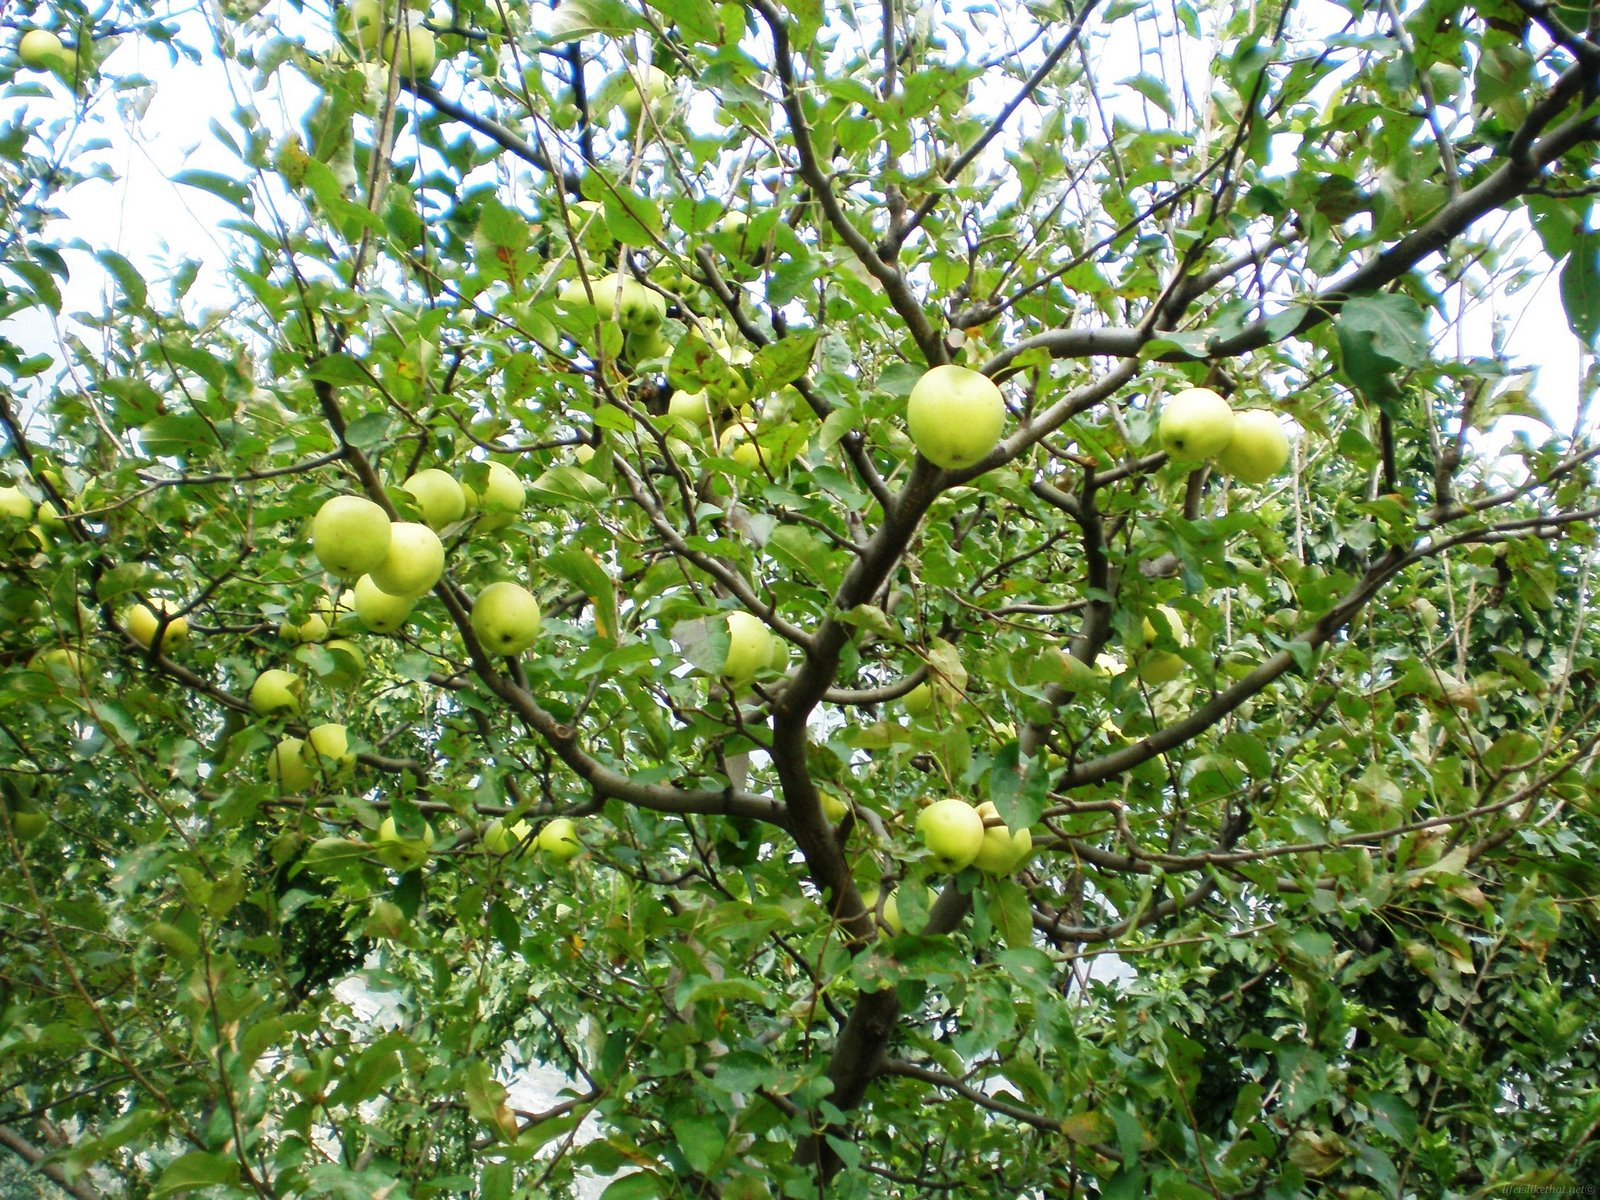 Canada Floral Delivery Blog: The History of The Apple Tree